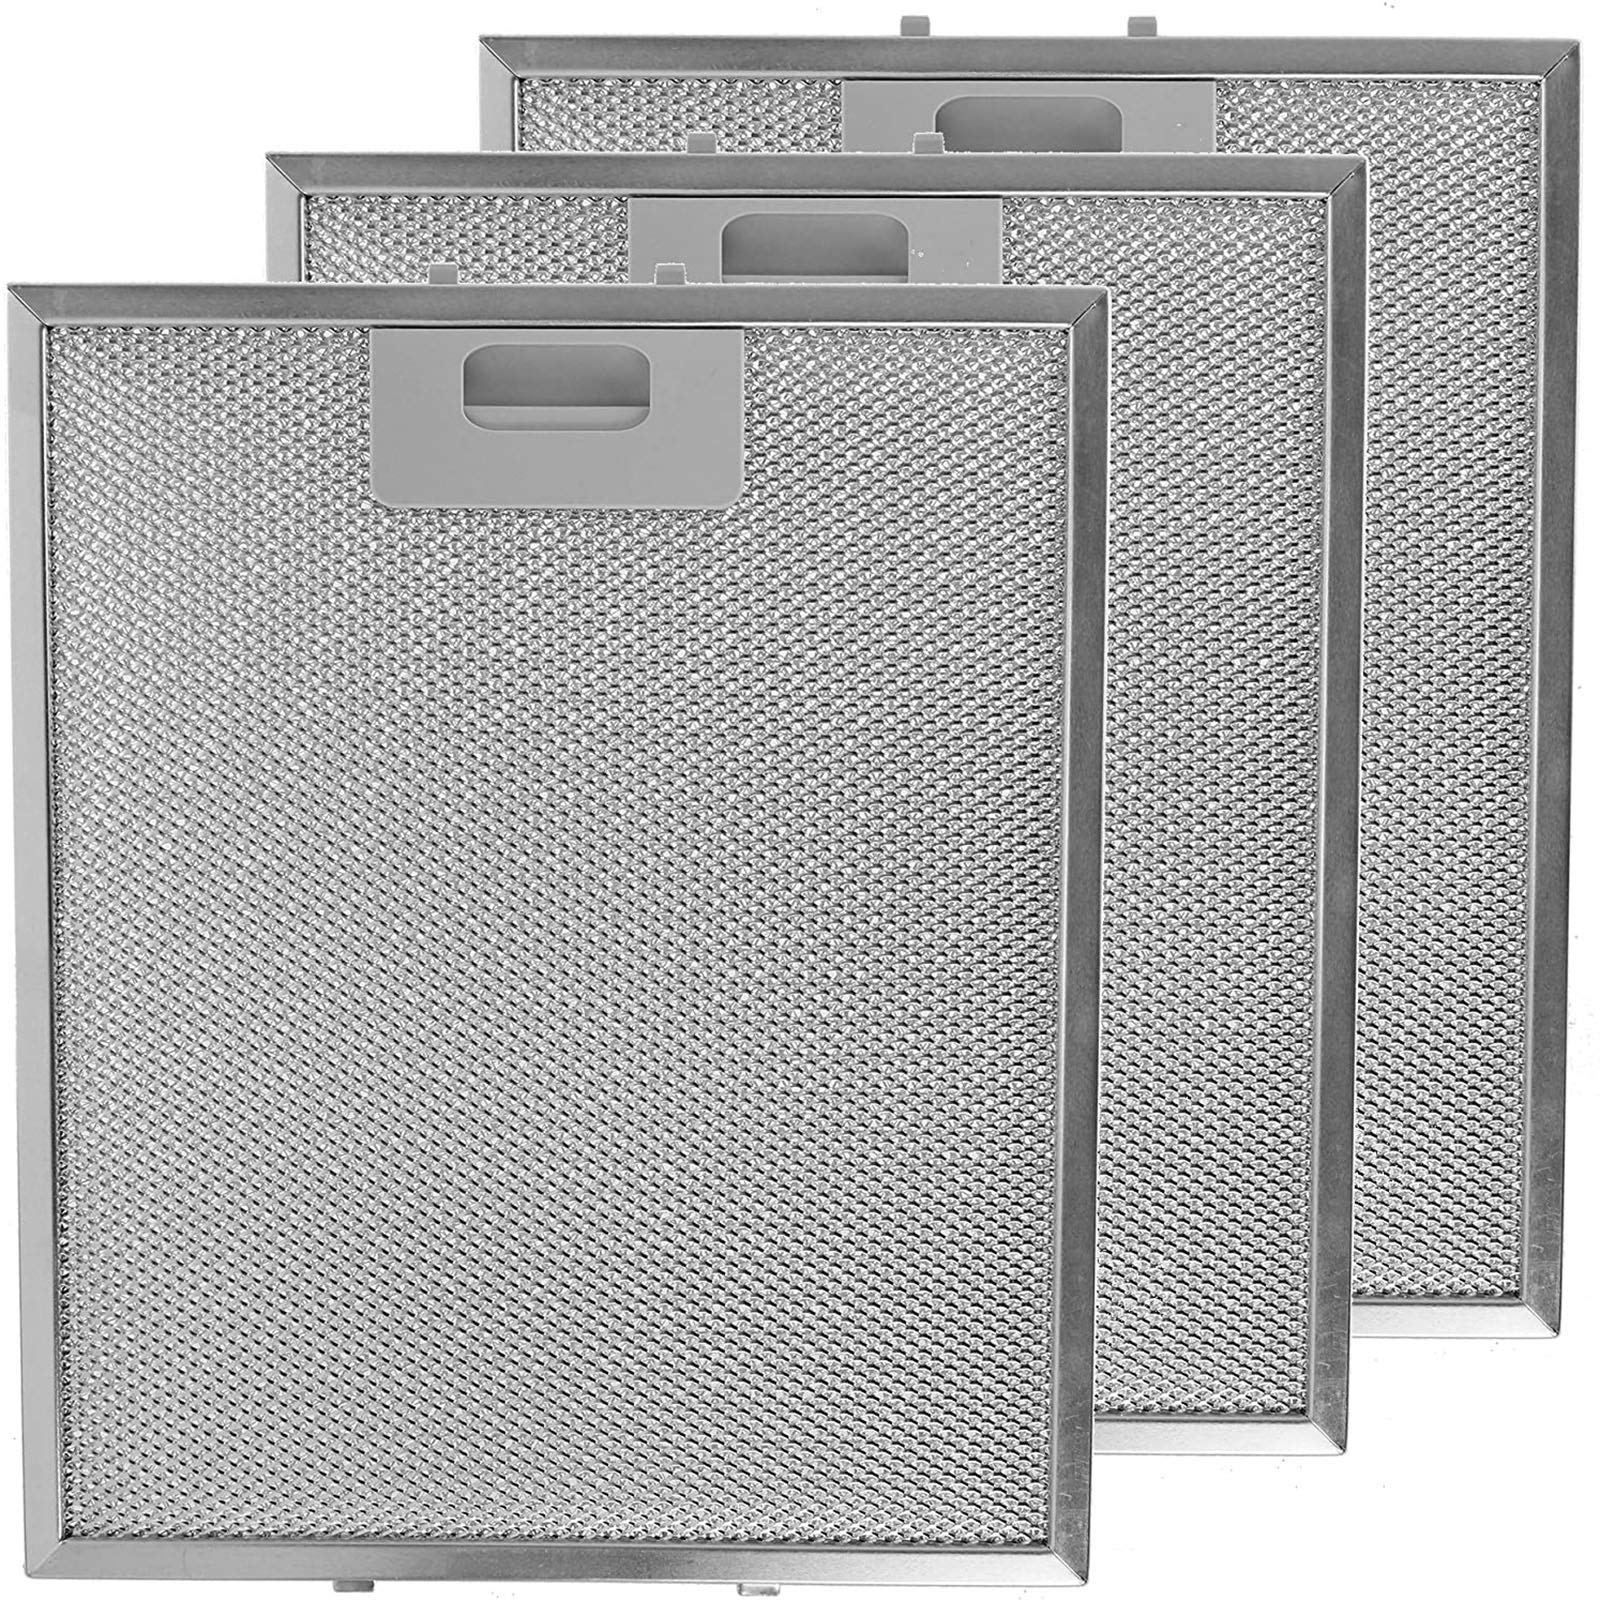 Genuine Leisure Cooker Hood Extractor Fan Carbon Filter Square